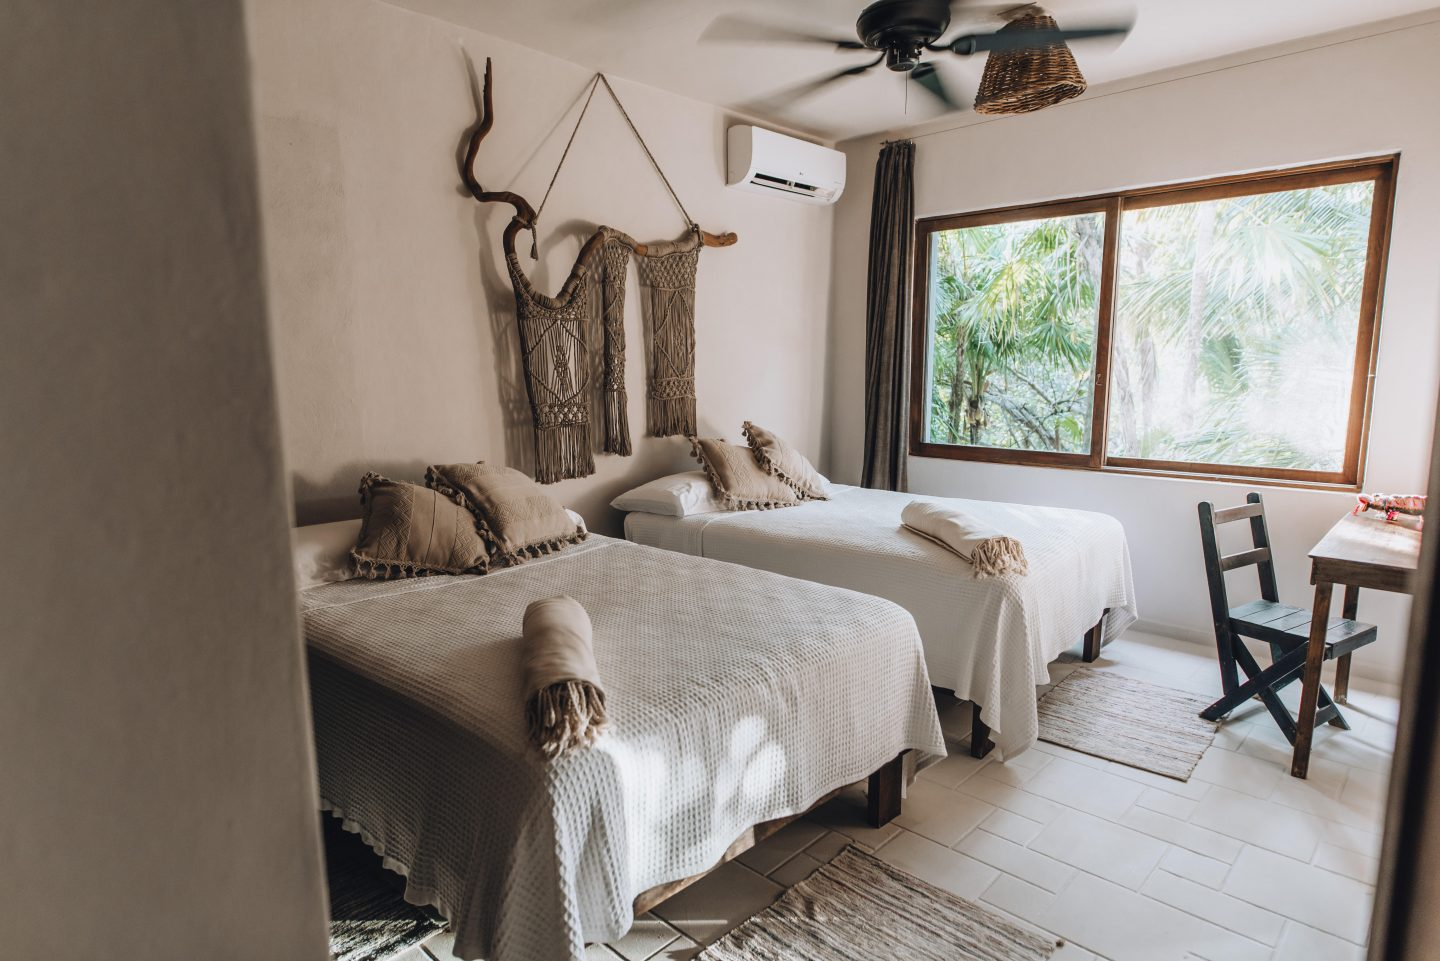 The interior of a room at Nest Tulum, one of the most Instagrammable places in Tulum